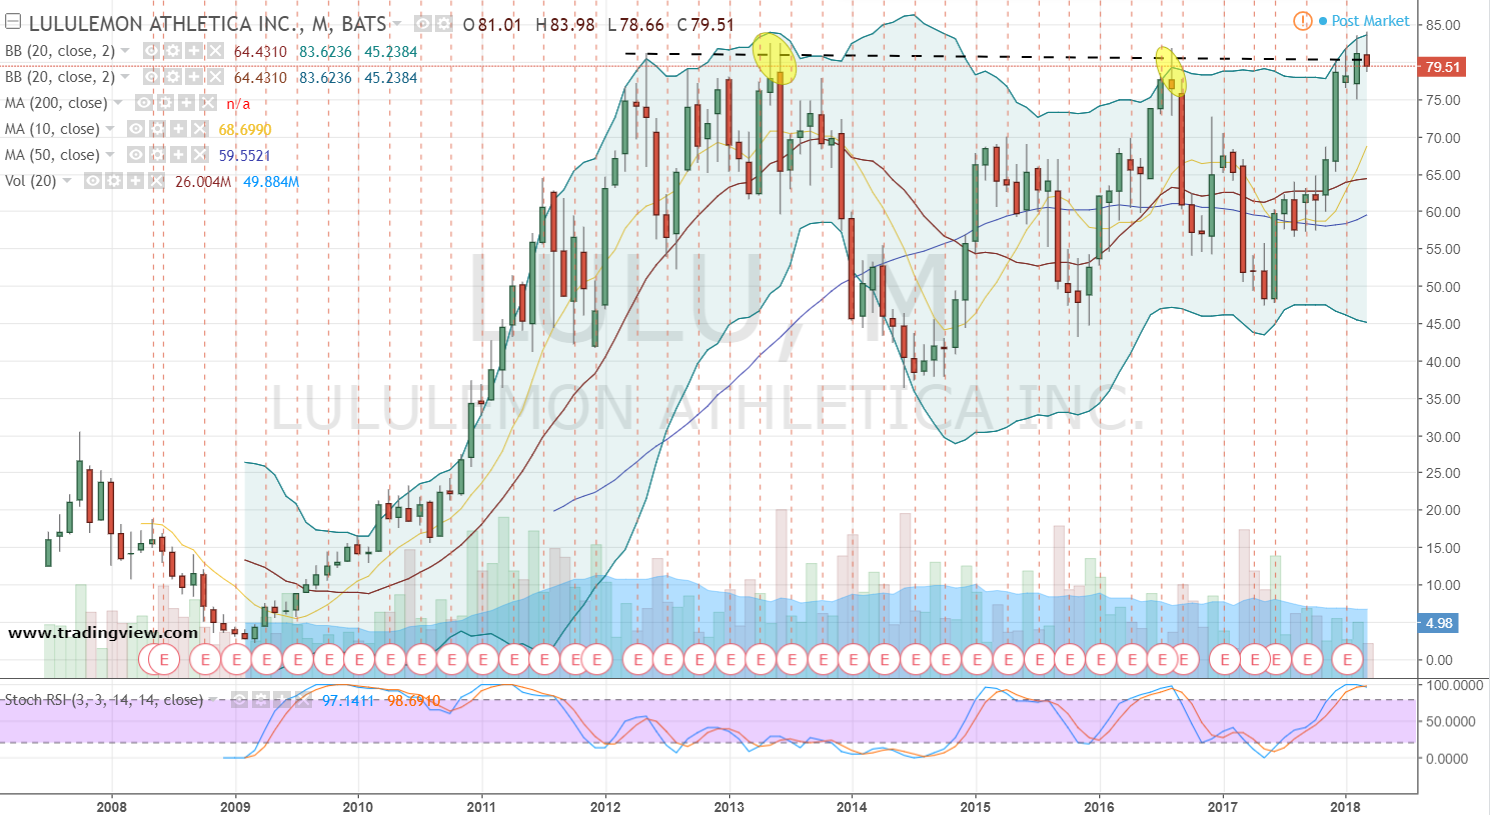 Lululemon Athletica (LULU) Price Target Increased to $100.00 by Analysts at Barclays